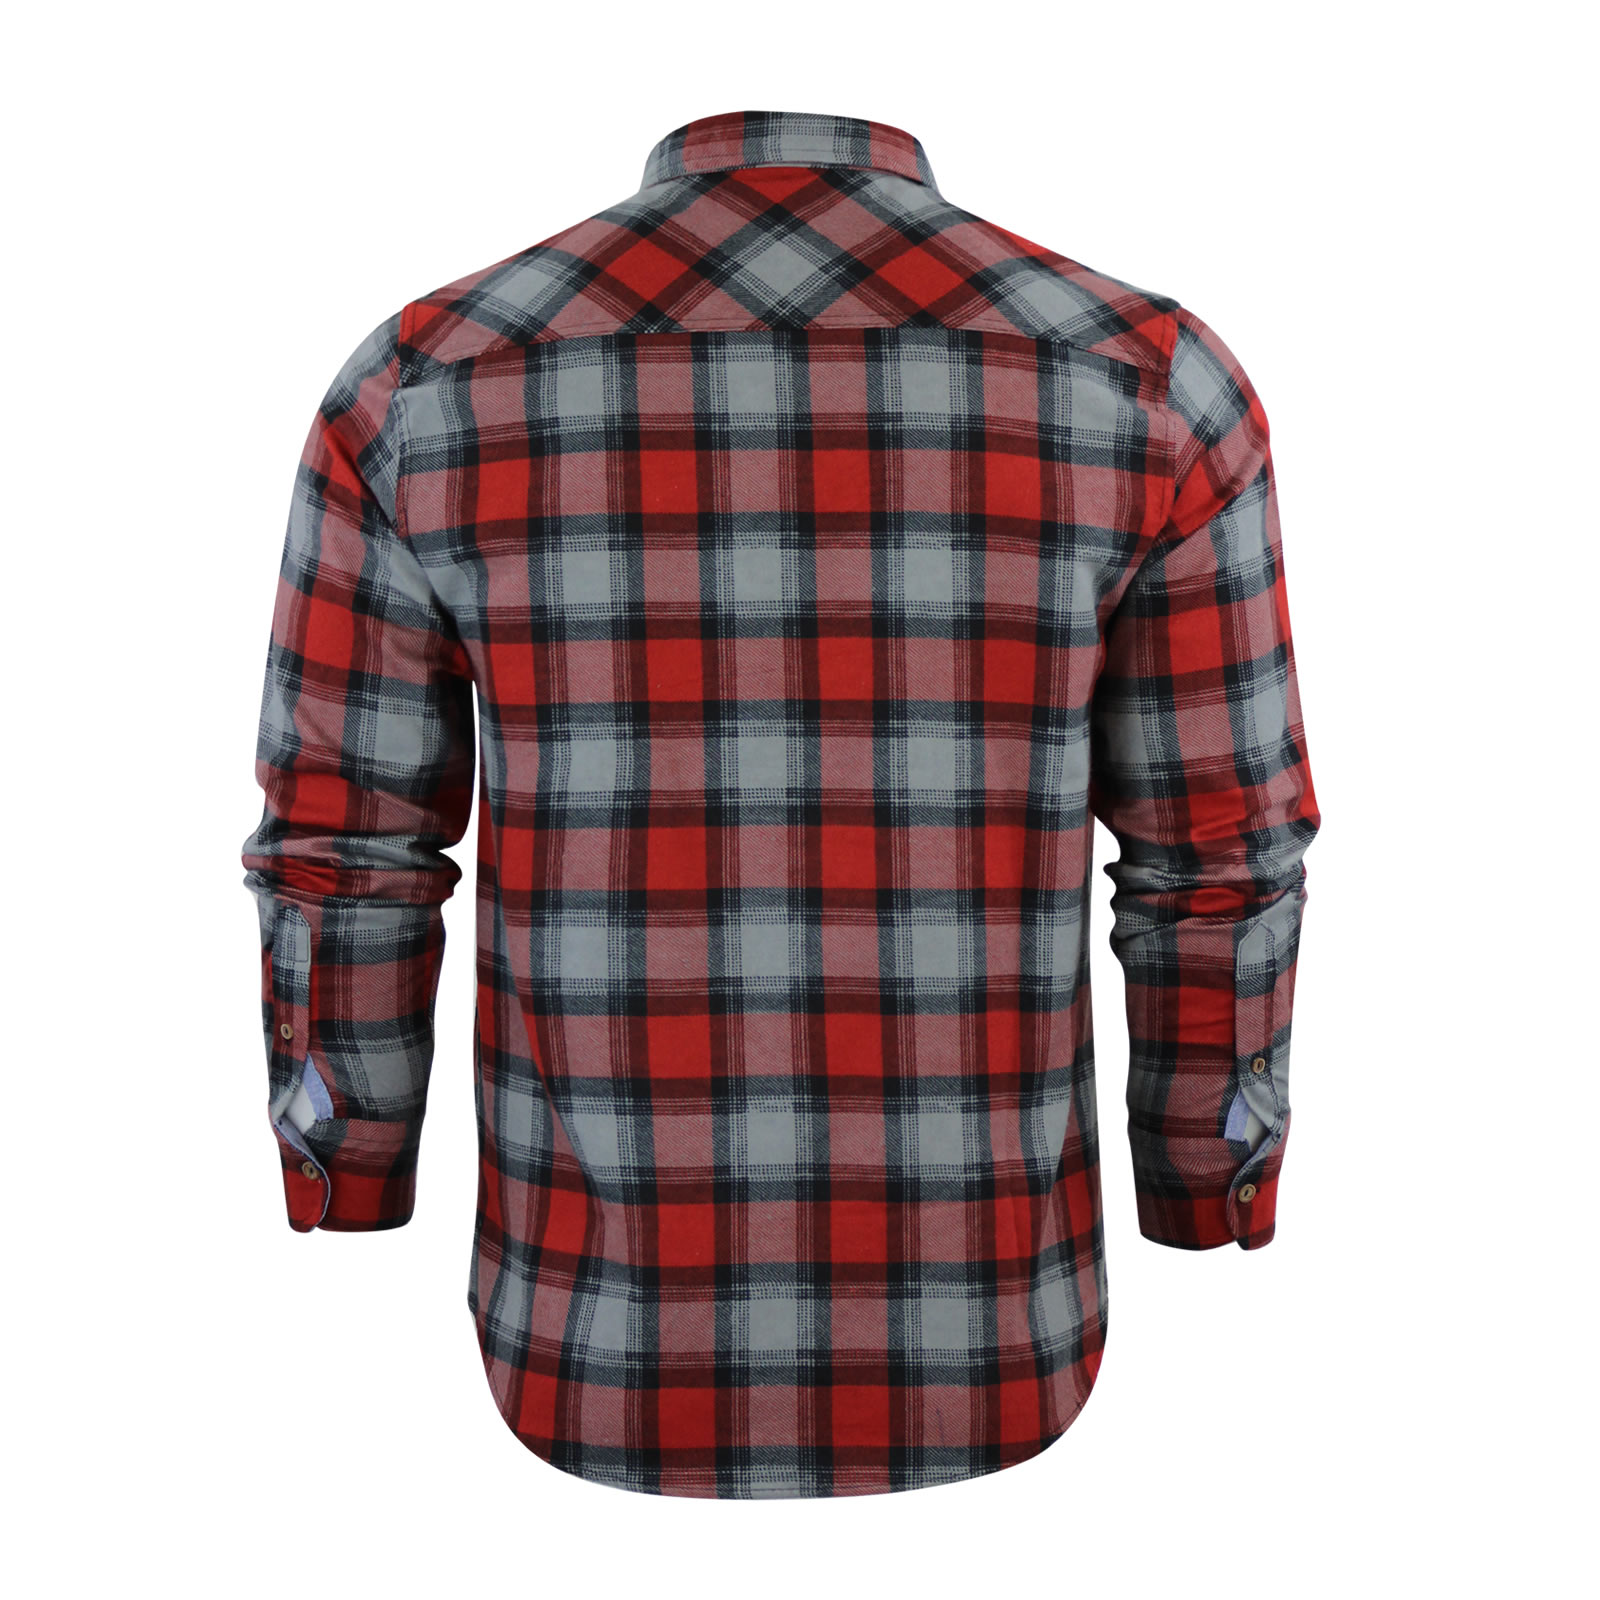 Bettwäsche Flanell Fleece Mens Check Shirt Brave Soul Flannel Brushed Cotton Long